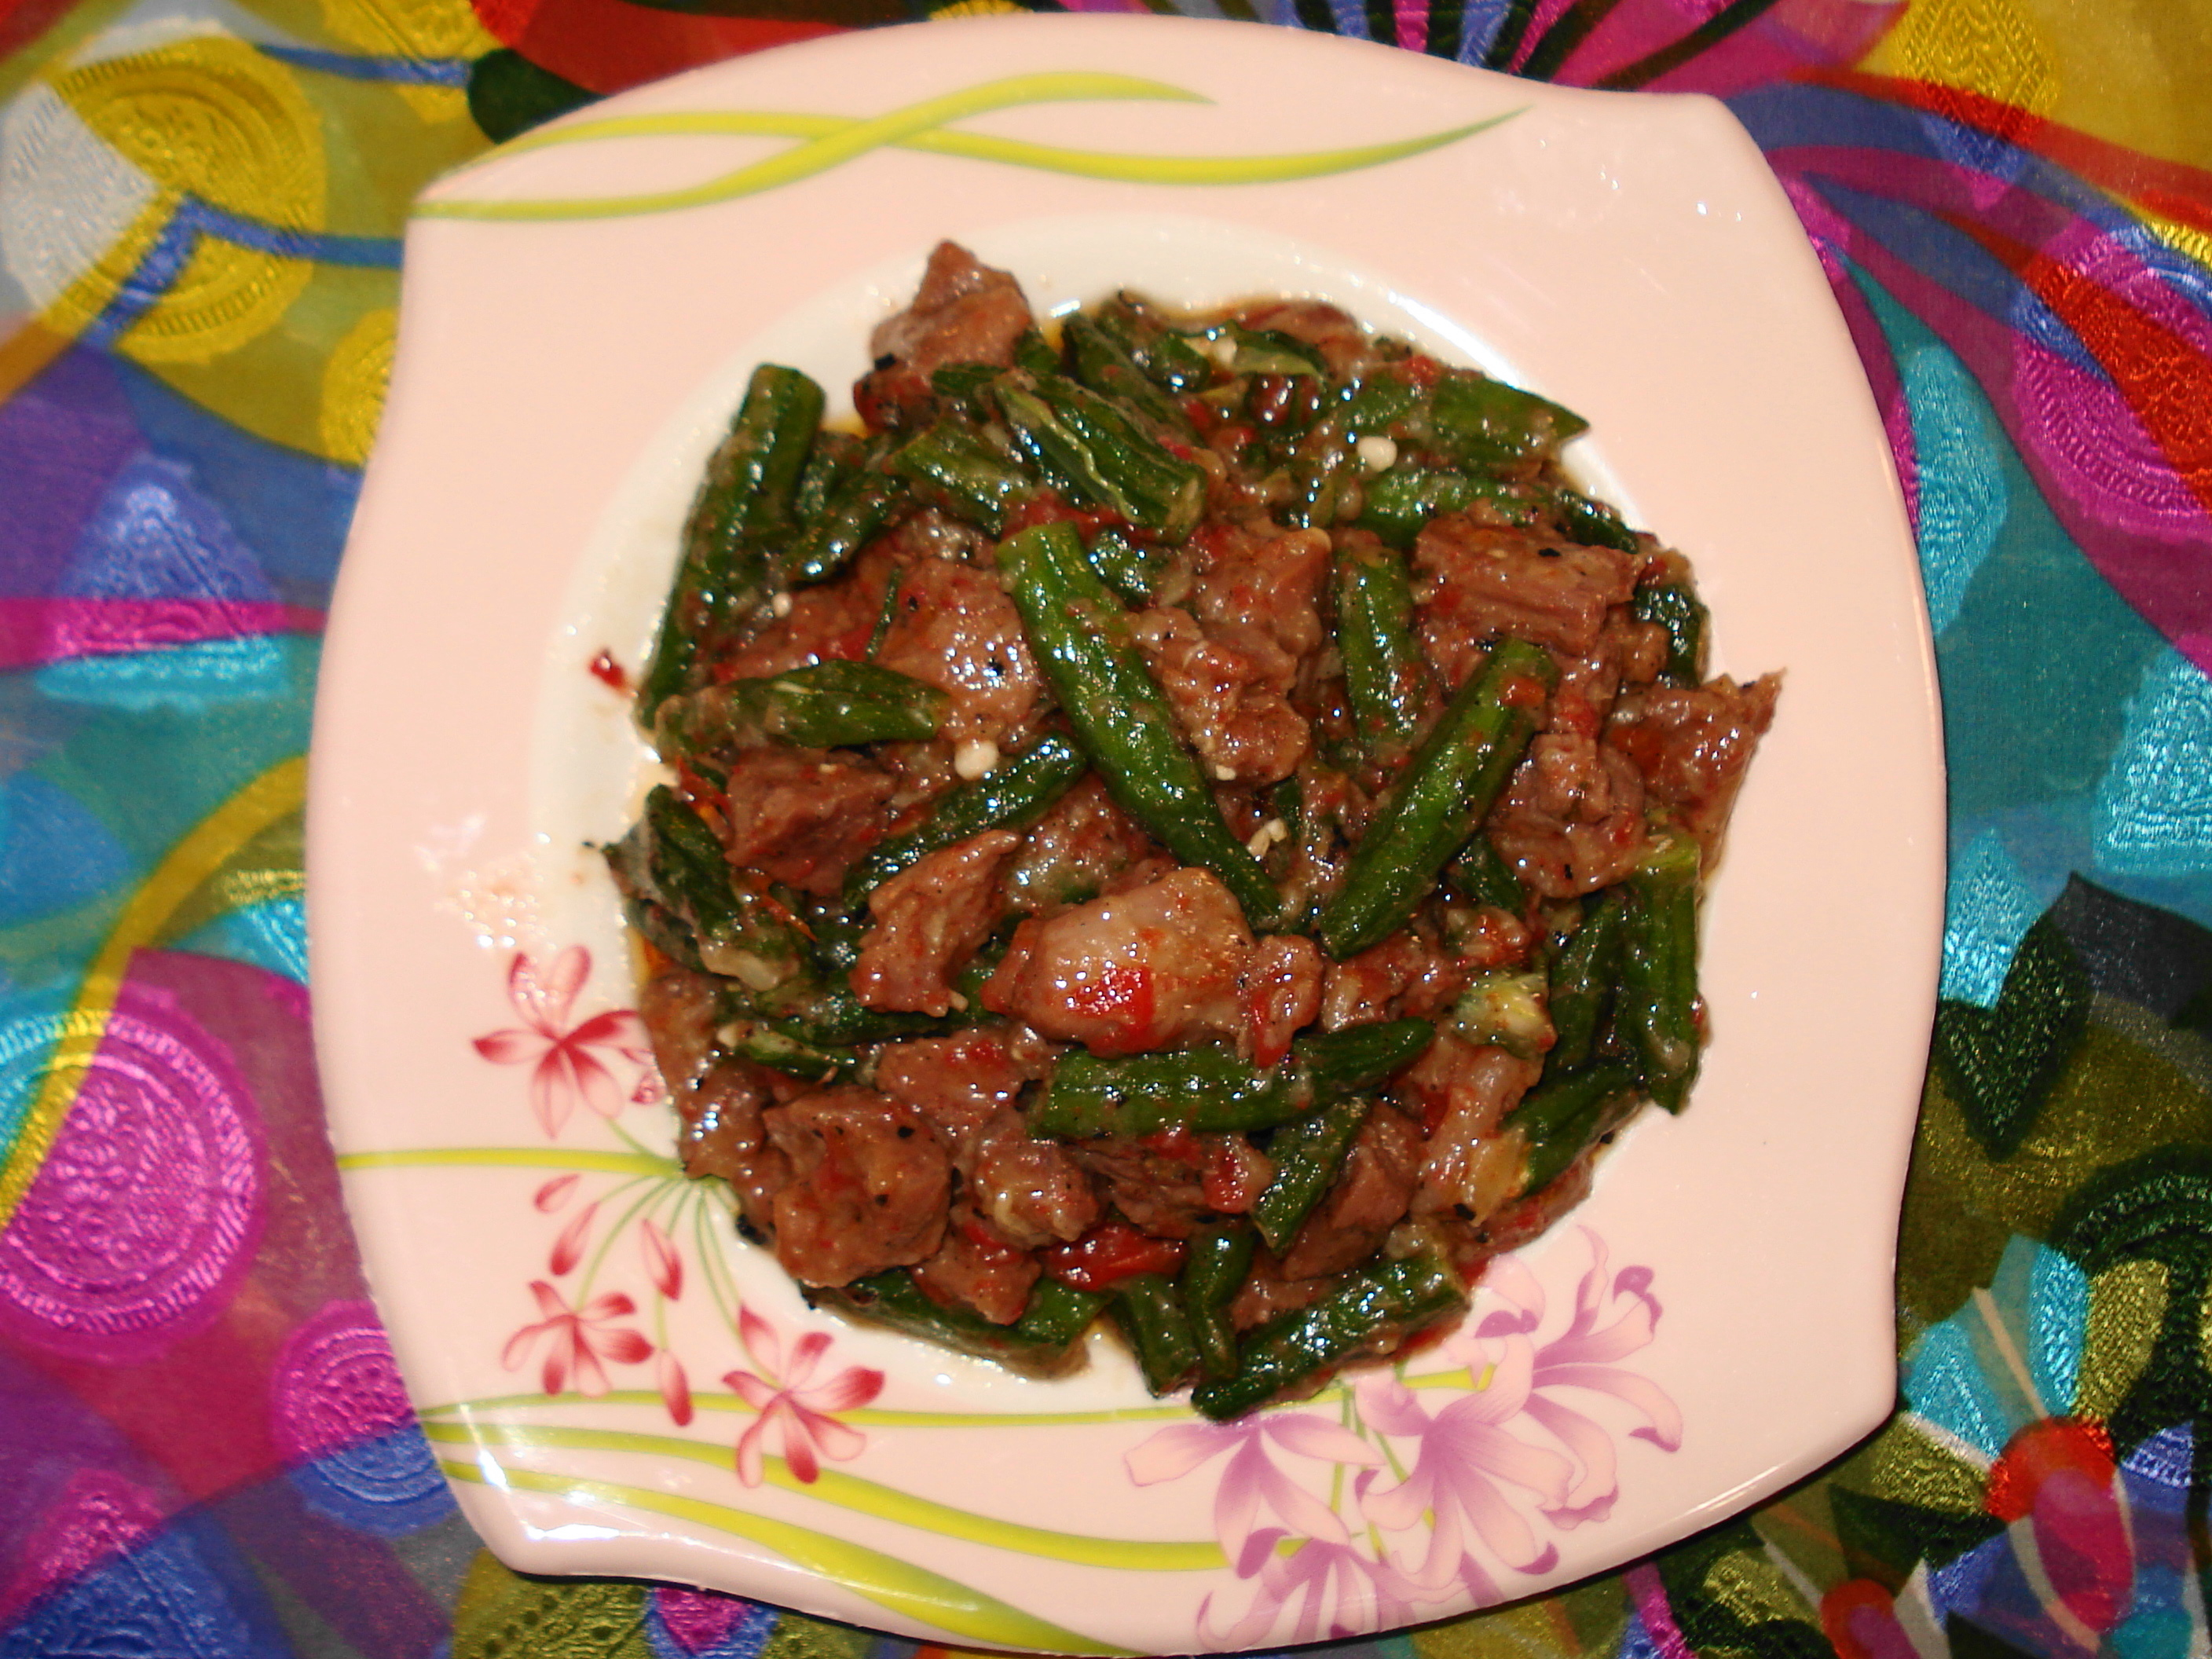 Cuisine of karachi bamje bosnian dish cook at your home and enjoy the dish from muslim bosnian influenced by turkish and arabian cuisine and european touch salam to bosnian muslims forumfinder Image collections